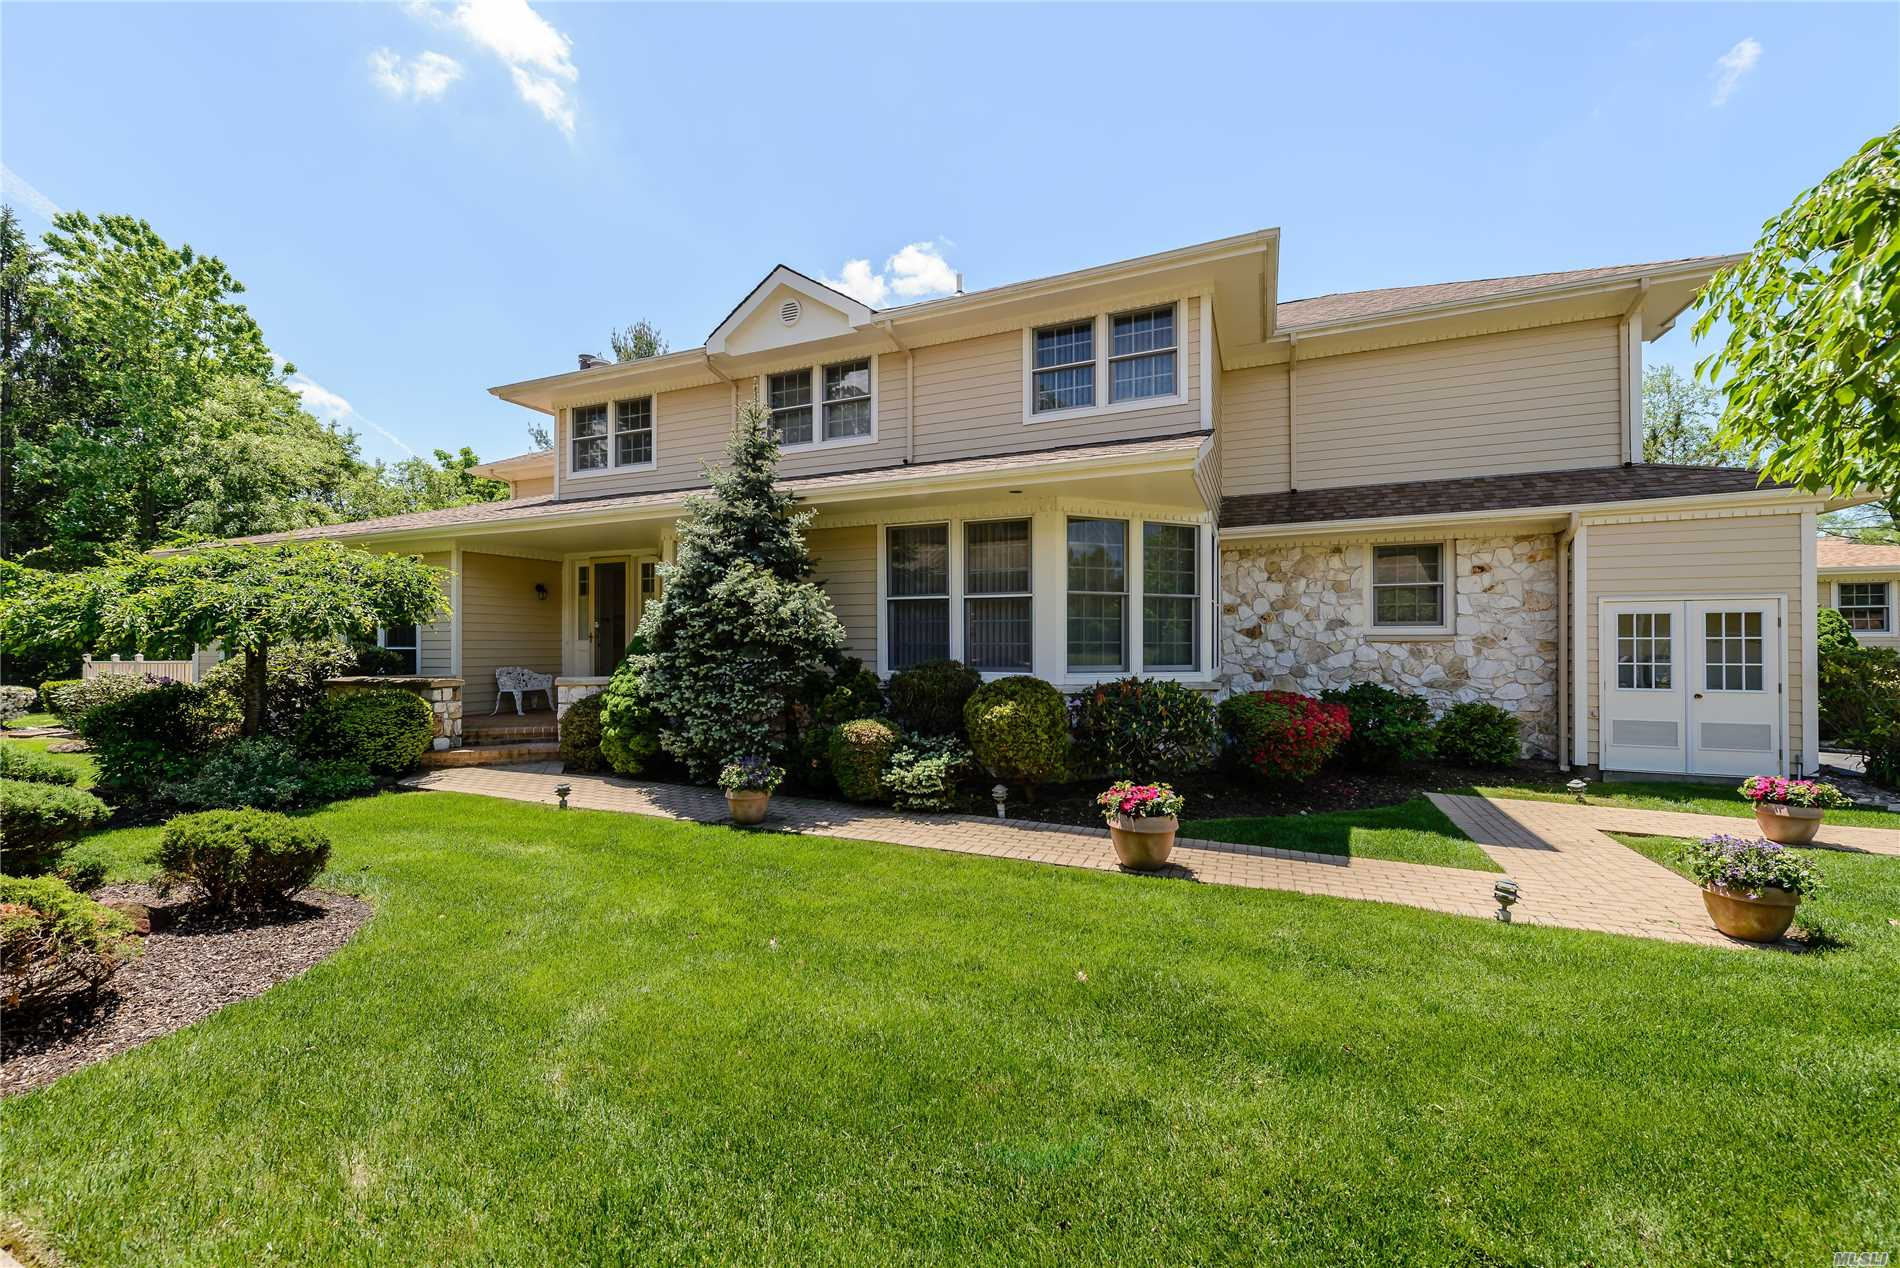 BEST PRICED WHITNEY MODEL IN THE LINKS! TAXES SUCCESSFULLY GRIEVED. LARGE REDUCTION COMING IN OCT 2019! Perfect Location - Trad CH Colonial With Private Backyard & Deep Front Expanse. Walk To The Clubhouse W/All Amenities (Indoor/Outdoor Pool, Gym, Card Rms) Extra Lg Deck For Entertaining, Newly Finished Hardwd Floors, Huge Principal Rms, Lg Mastr Suite W/Spa Bath. Dramatically High Entrance Foyer,  Herricks Sd, 25 Mins To Nyc, Amazing Value!! In Pristine Condition. See Attached Grievance Letter